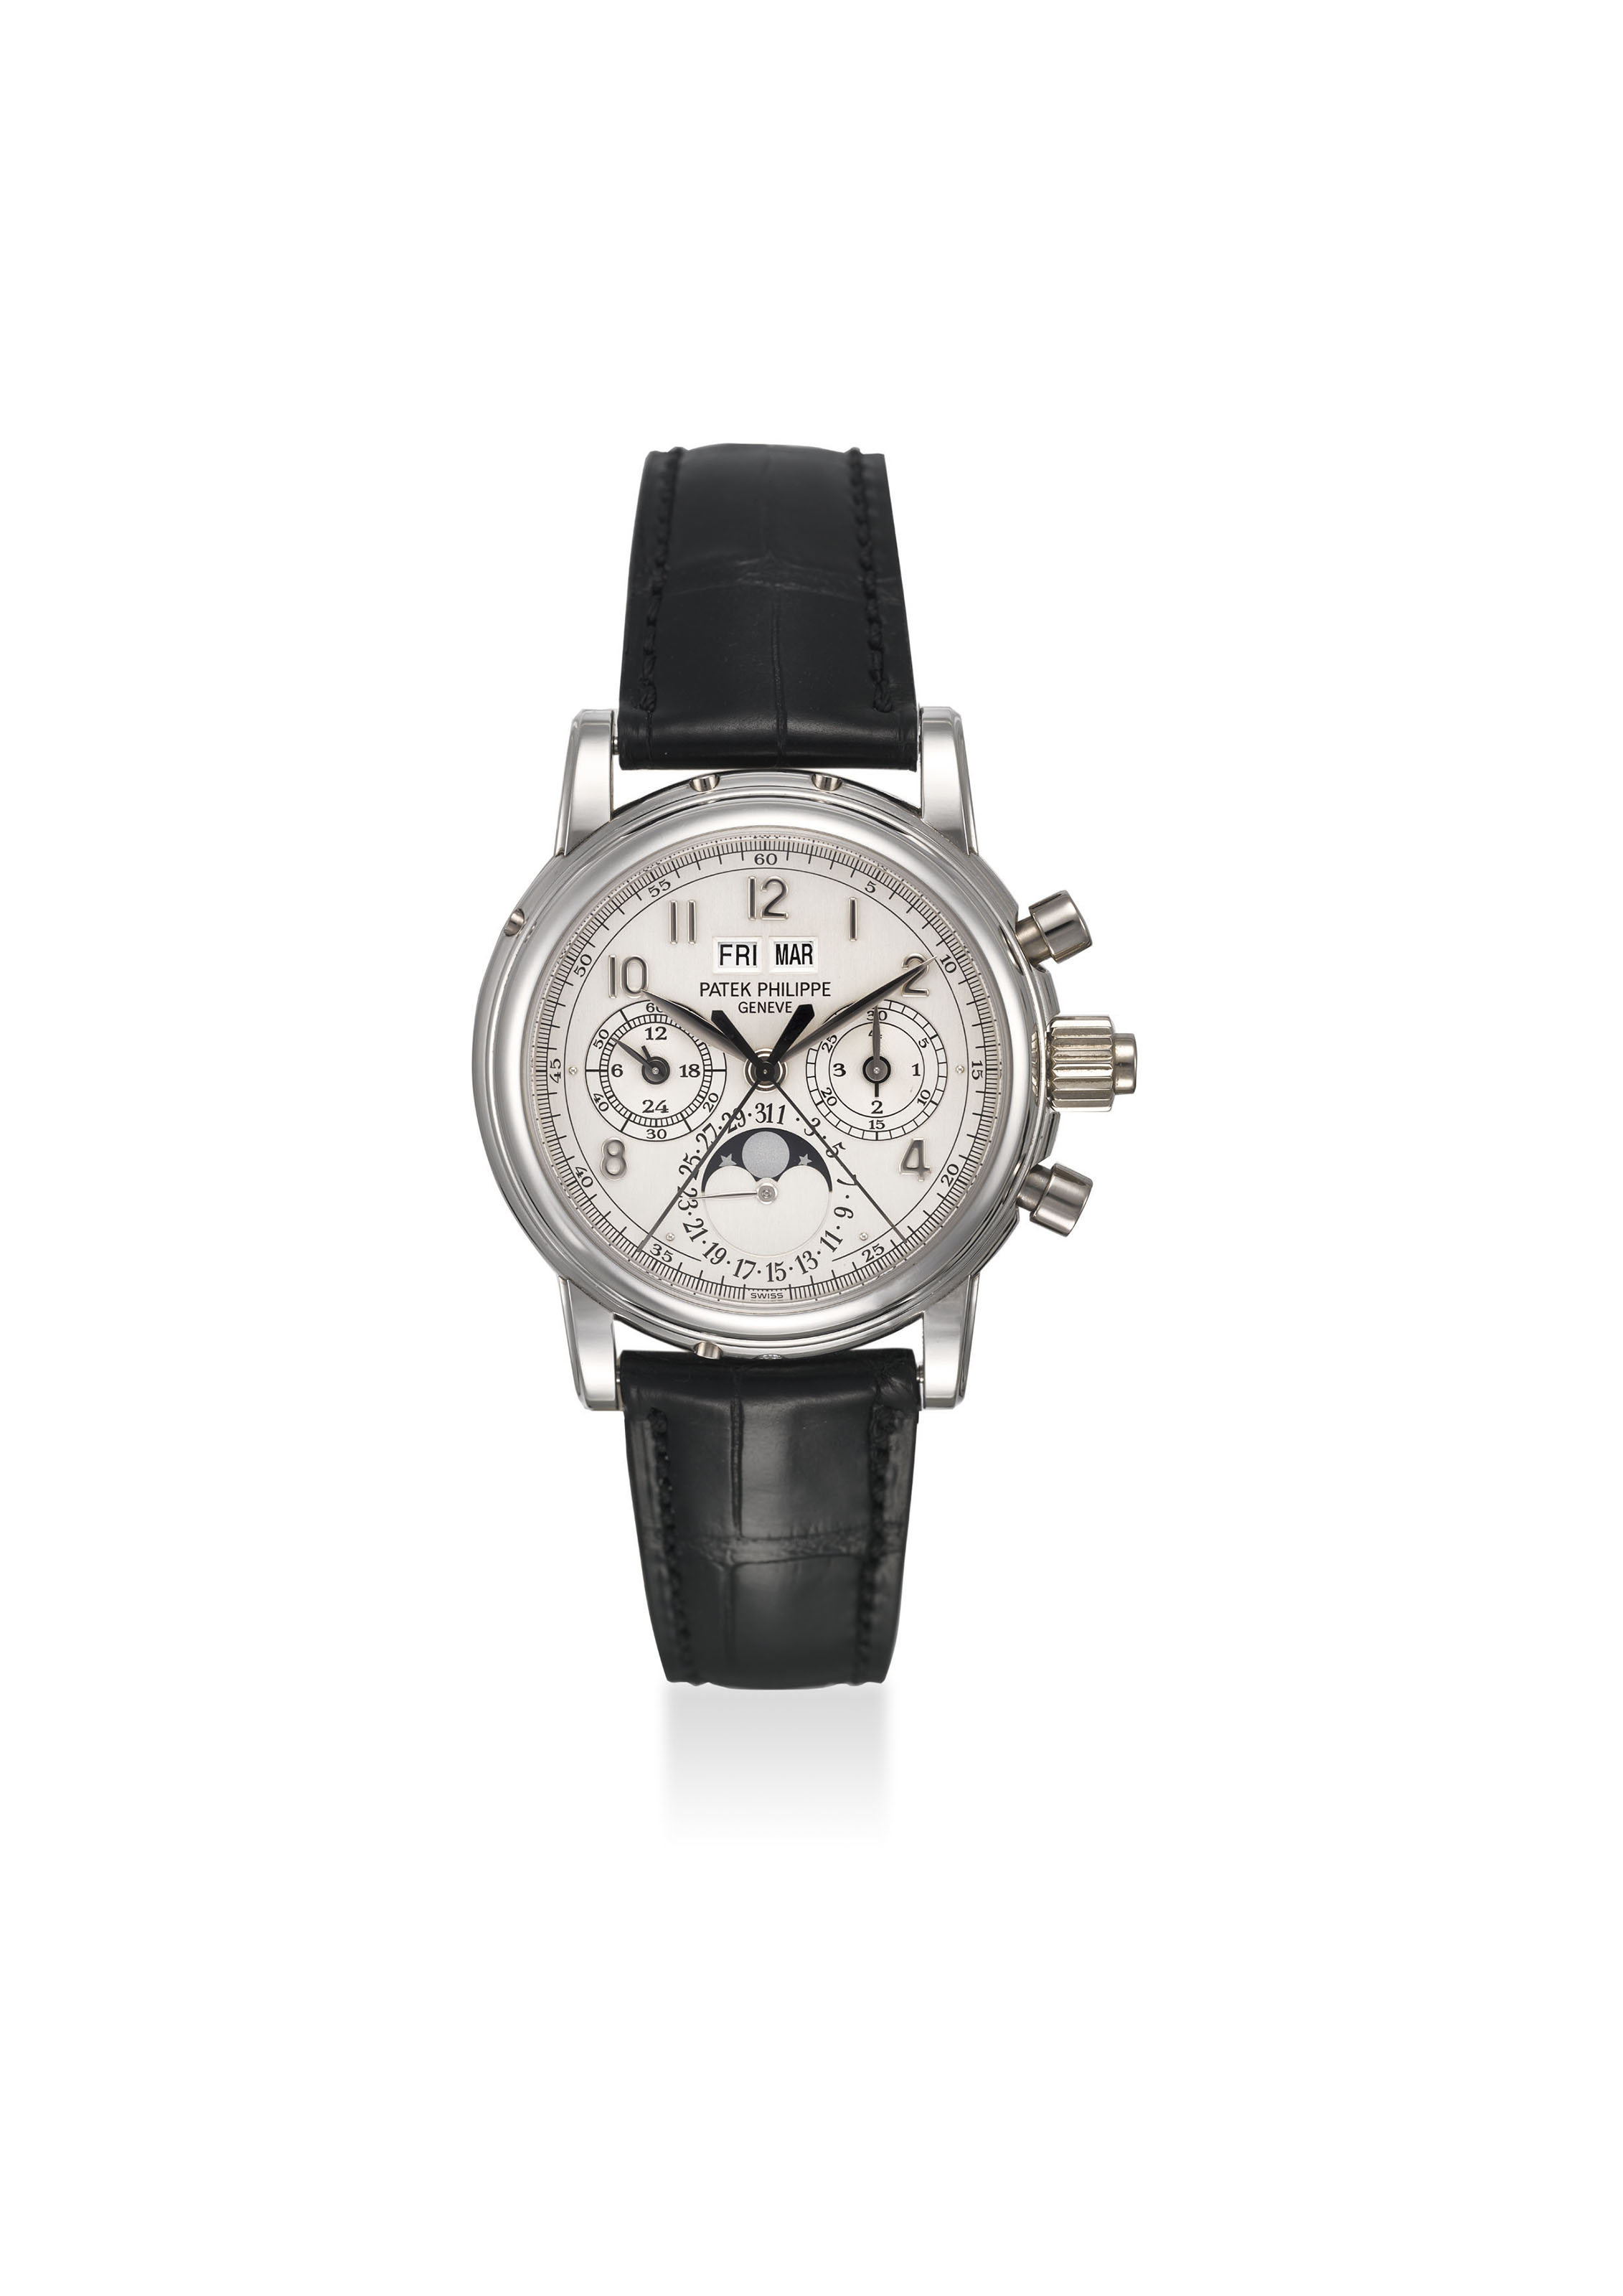 PATEK PHILIPPE. A VERY FINE AND RARE PLATINUM PERPETUAL CALENDAR SPLIT SECONDS CHRONOGRAPH WRISTWATCH WITH MOON PHASES, 24 HOUR AND LEAP YEAR INDICATION, ADDITIONAL CASE BACK, ORIGINAL CERTIFICATE AND BOX